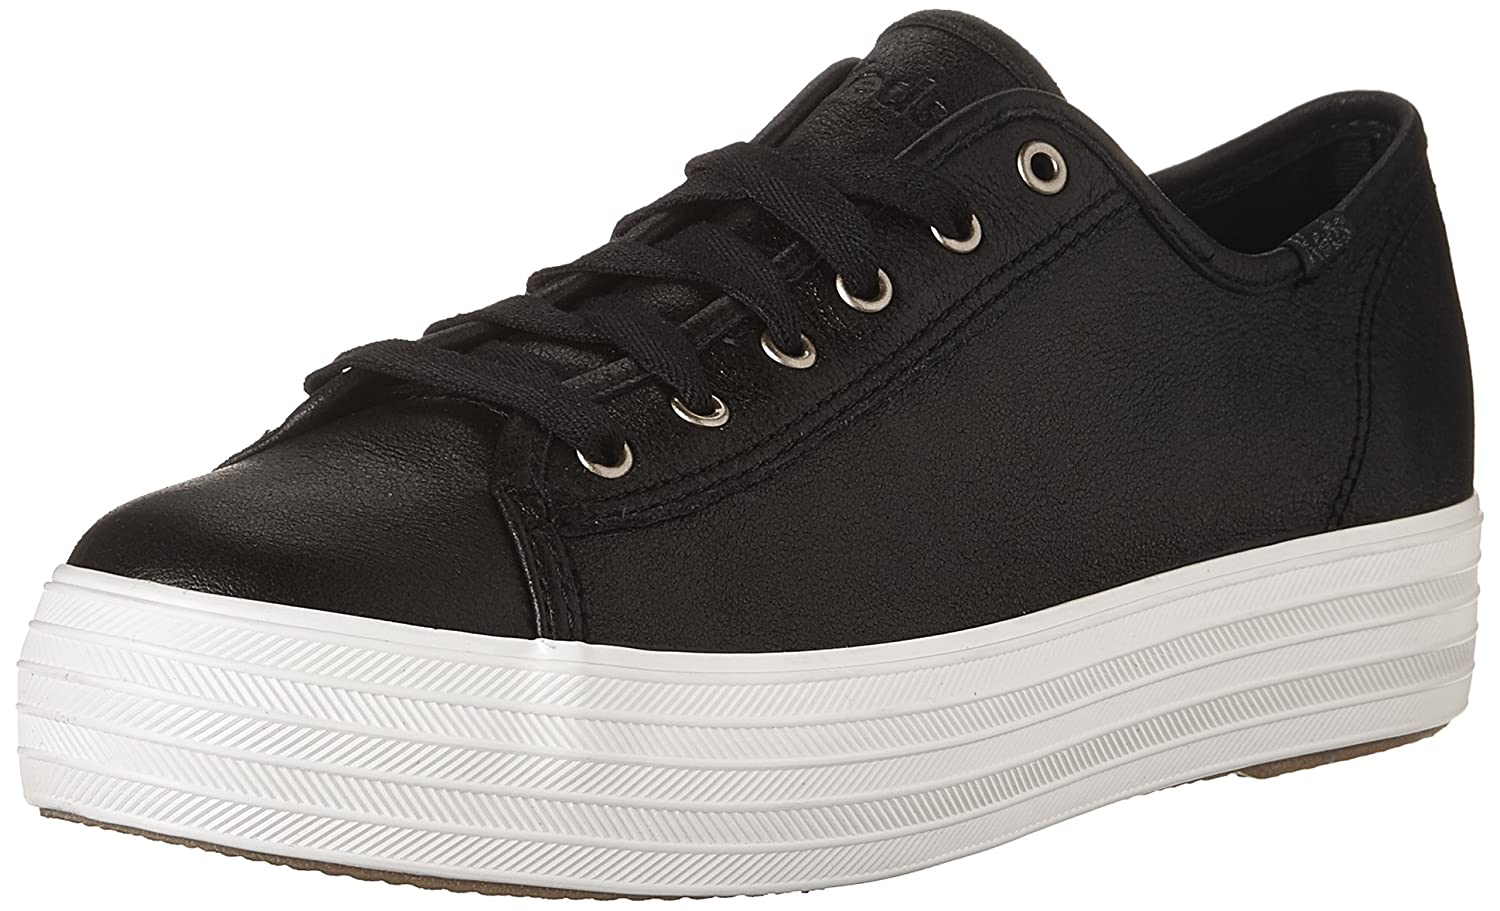 Triple Kick Metallic Suede B01MZBQ7HN 6.5 M US|Black